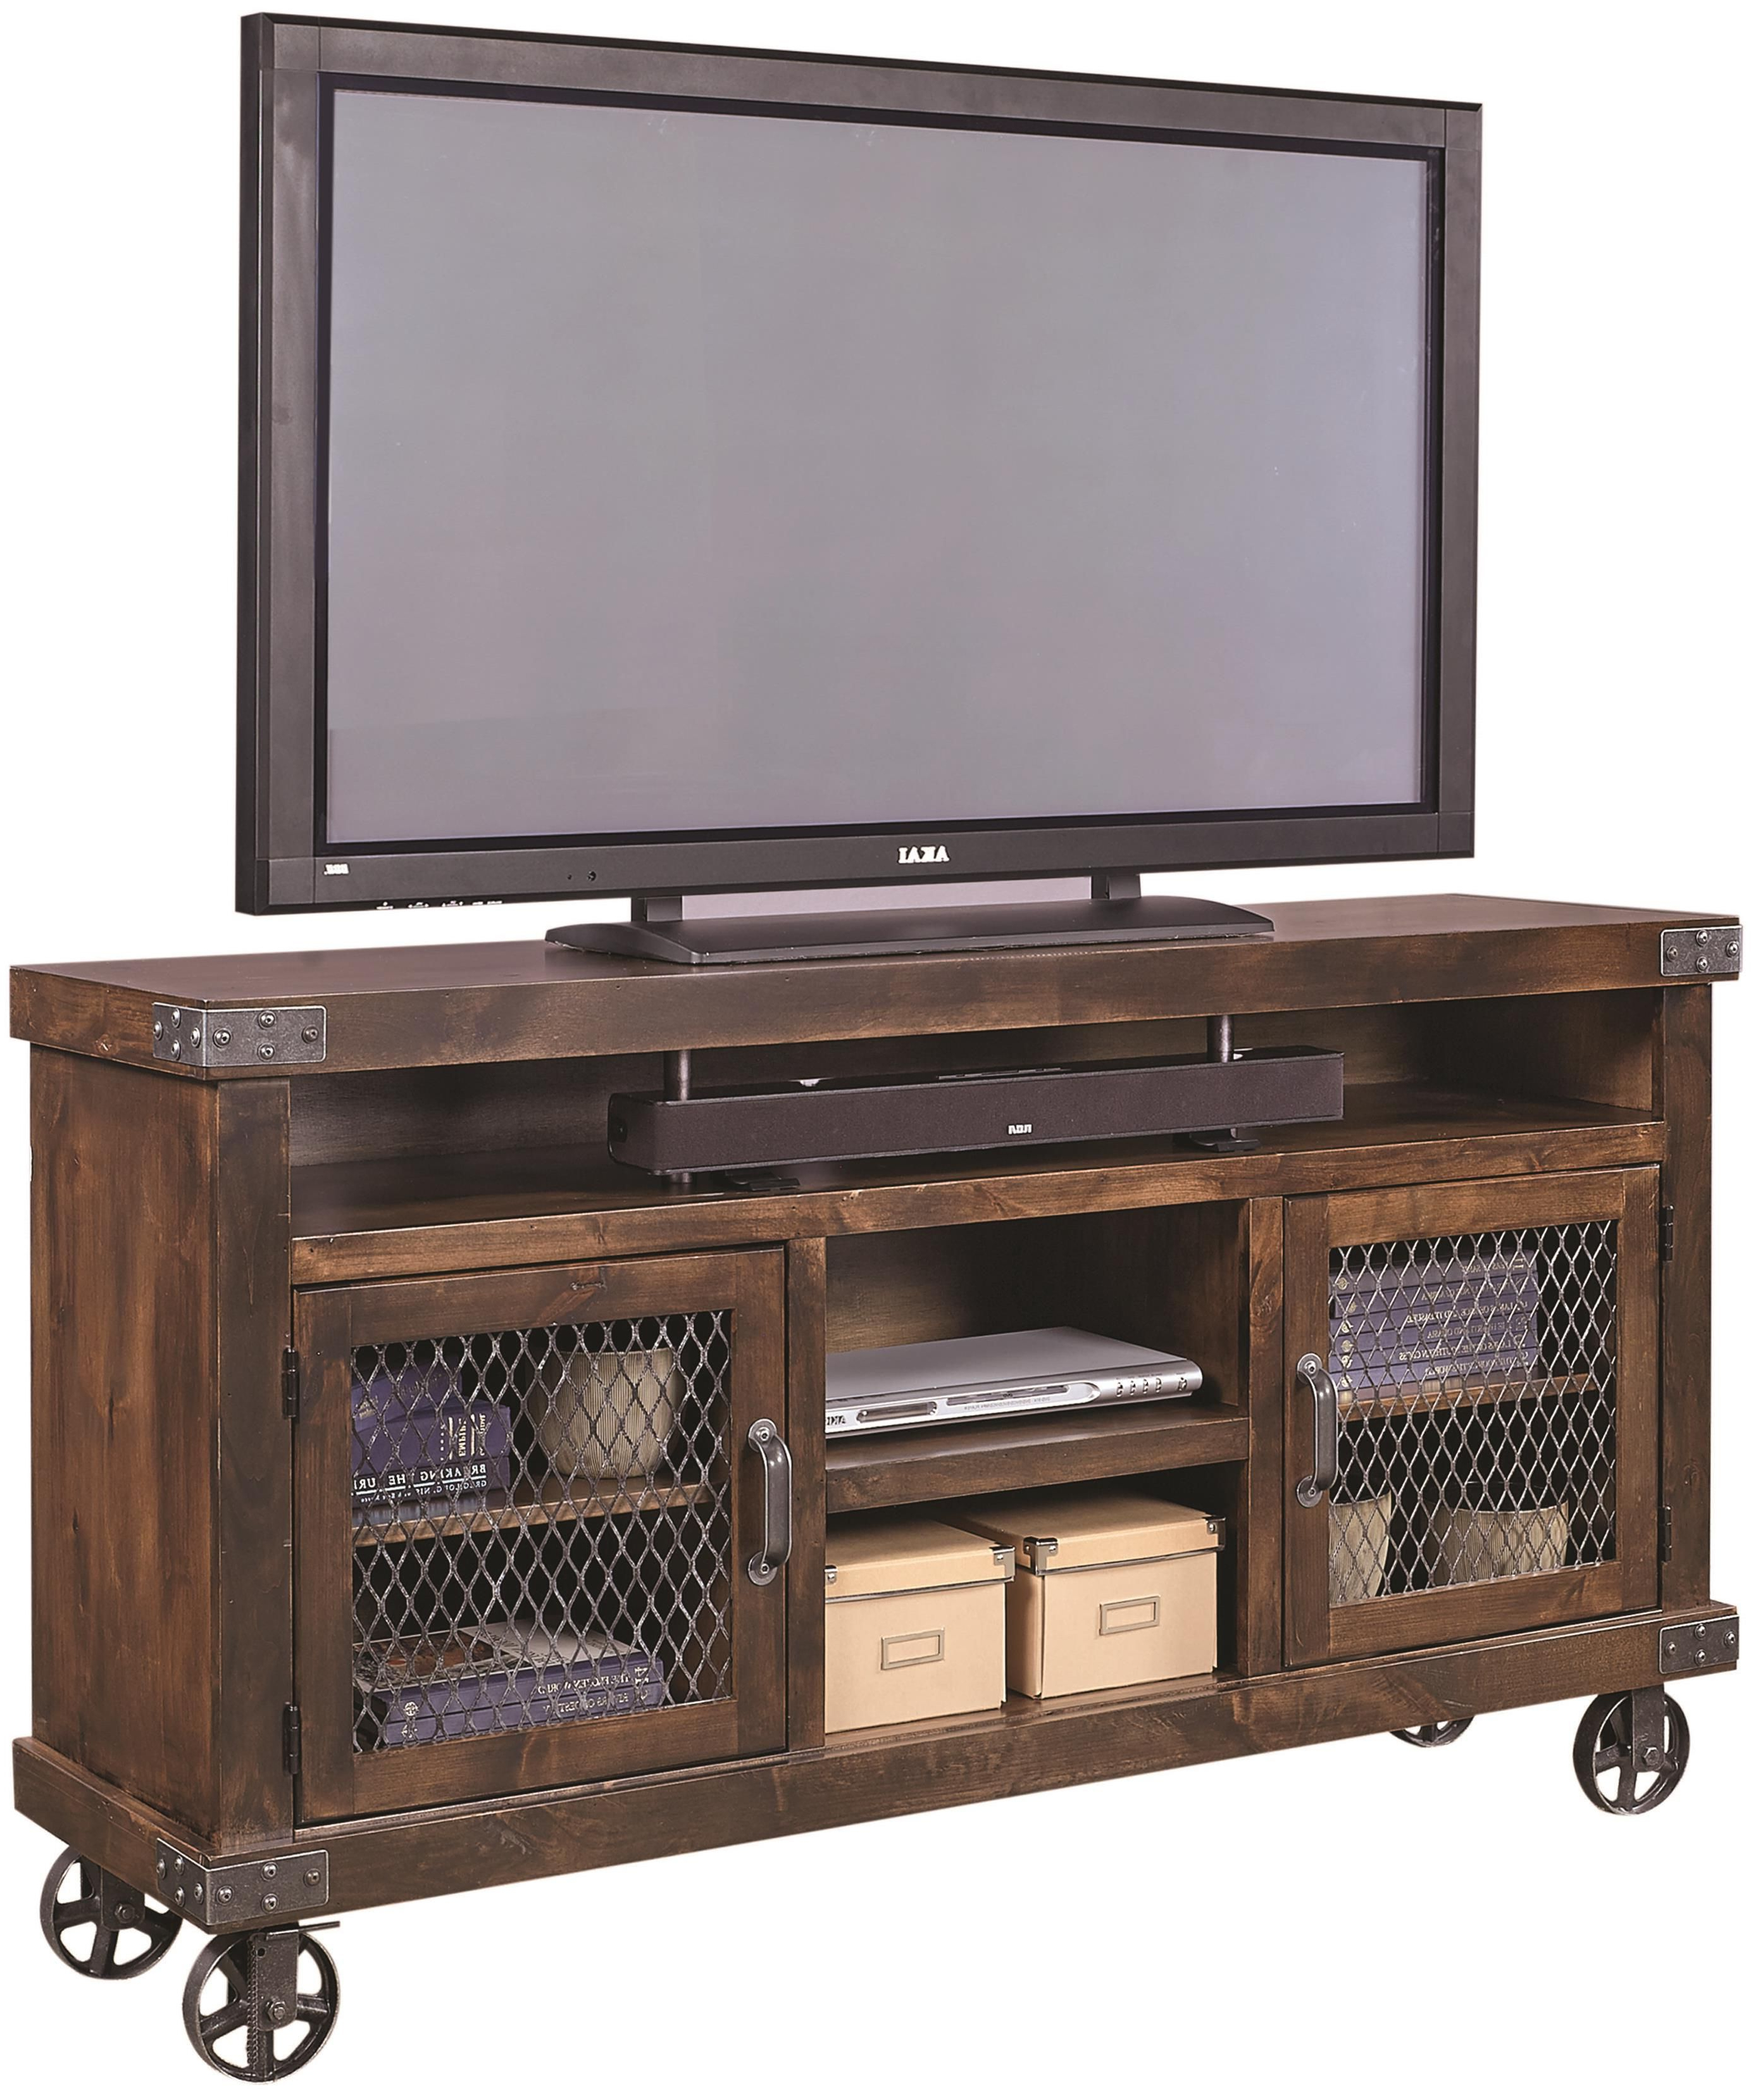 "Industrial 65"" Console With Metal Castersaspenhome In 2019 Pertaining To Fashionable Under Tv Cabinets (View 9 of 20)"